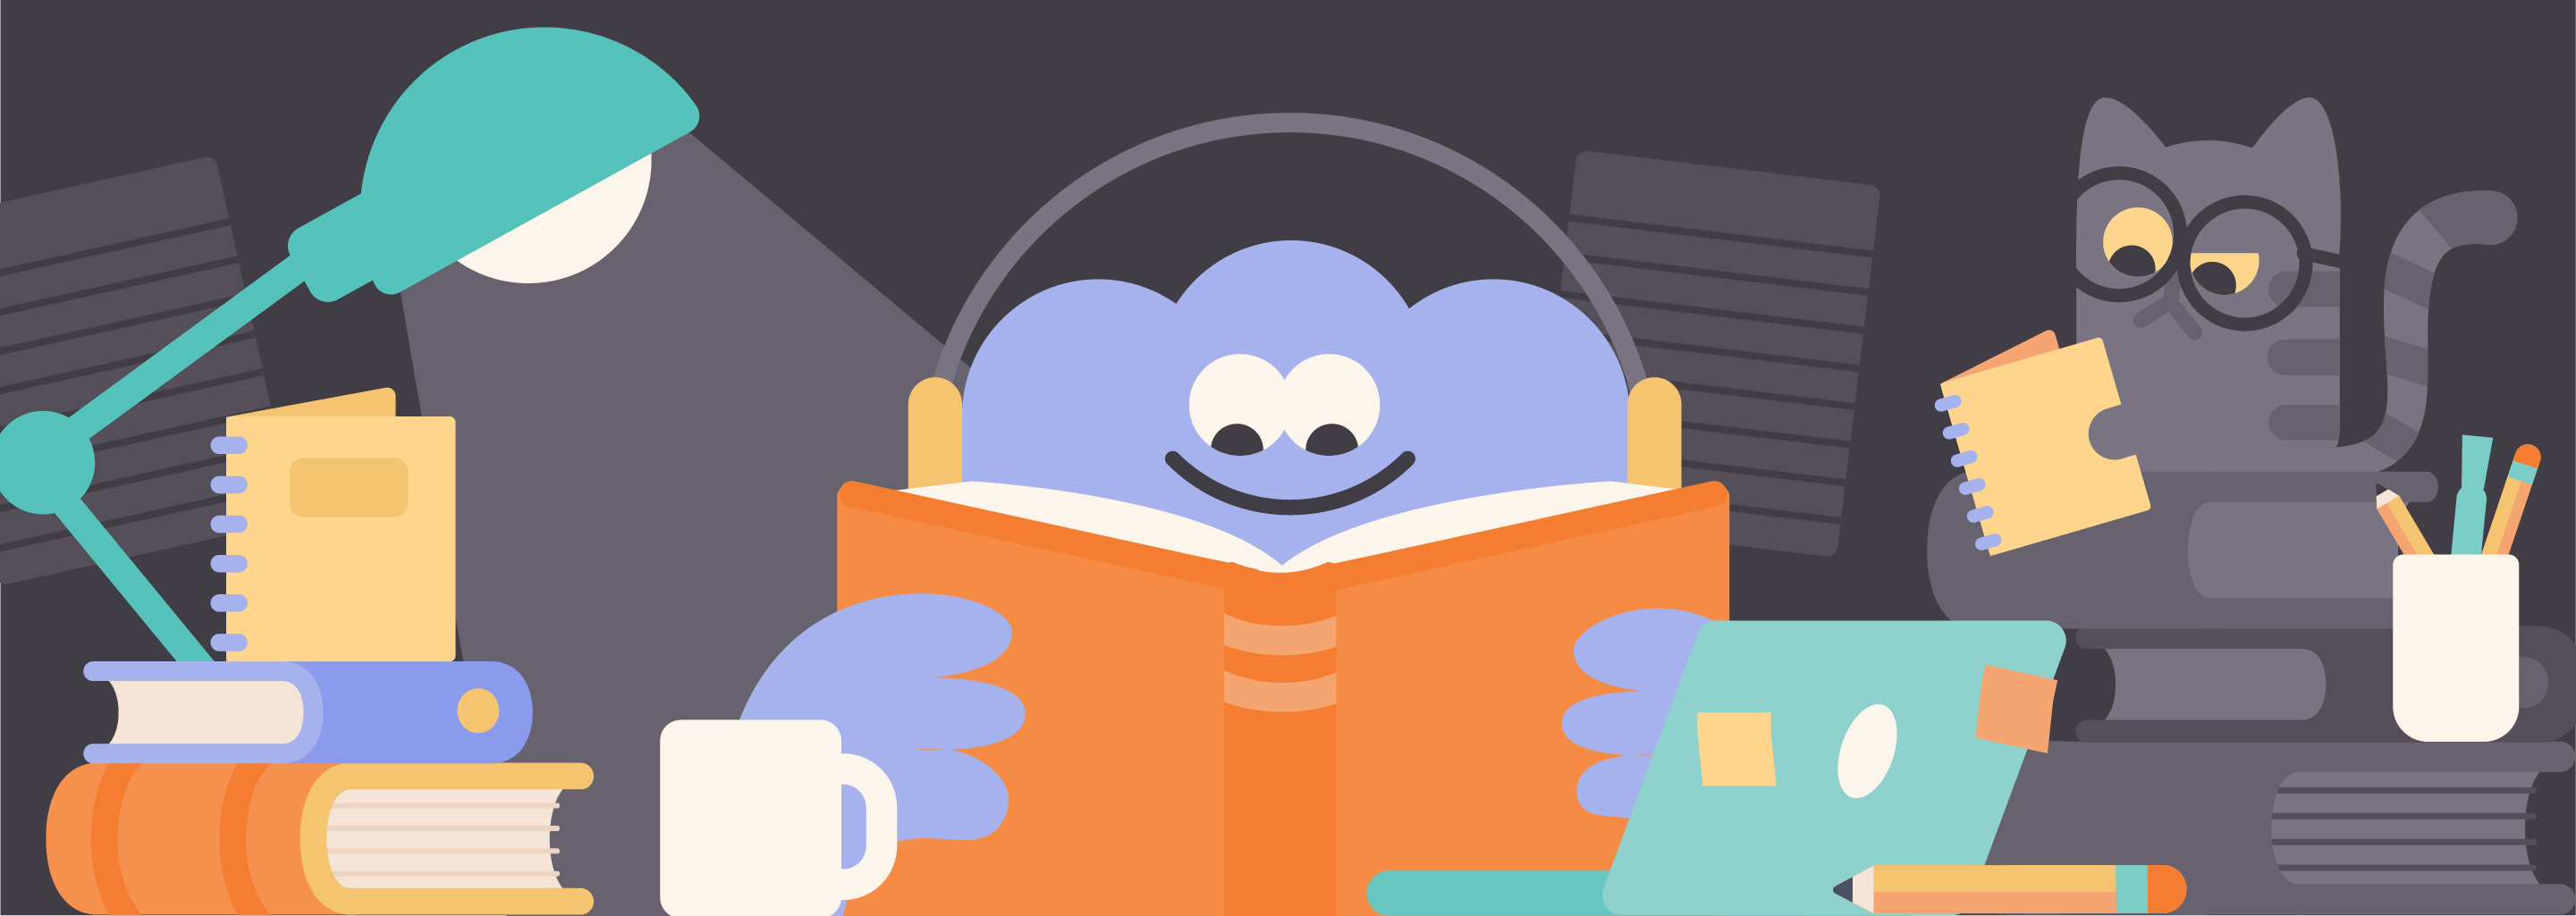 Image from Headspace. Displays a creature thoughtfully studying.